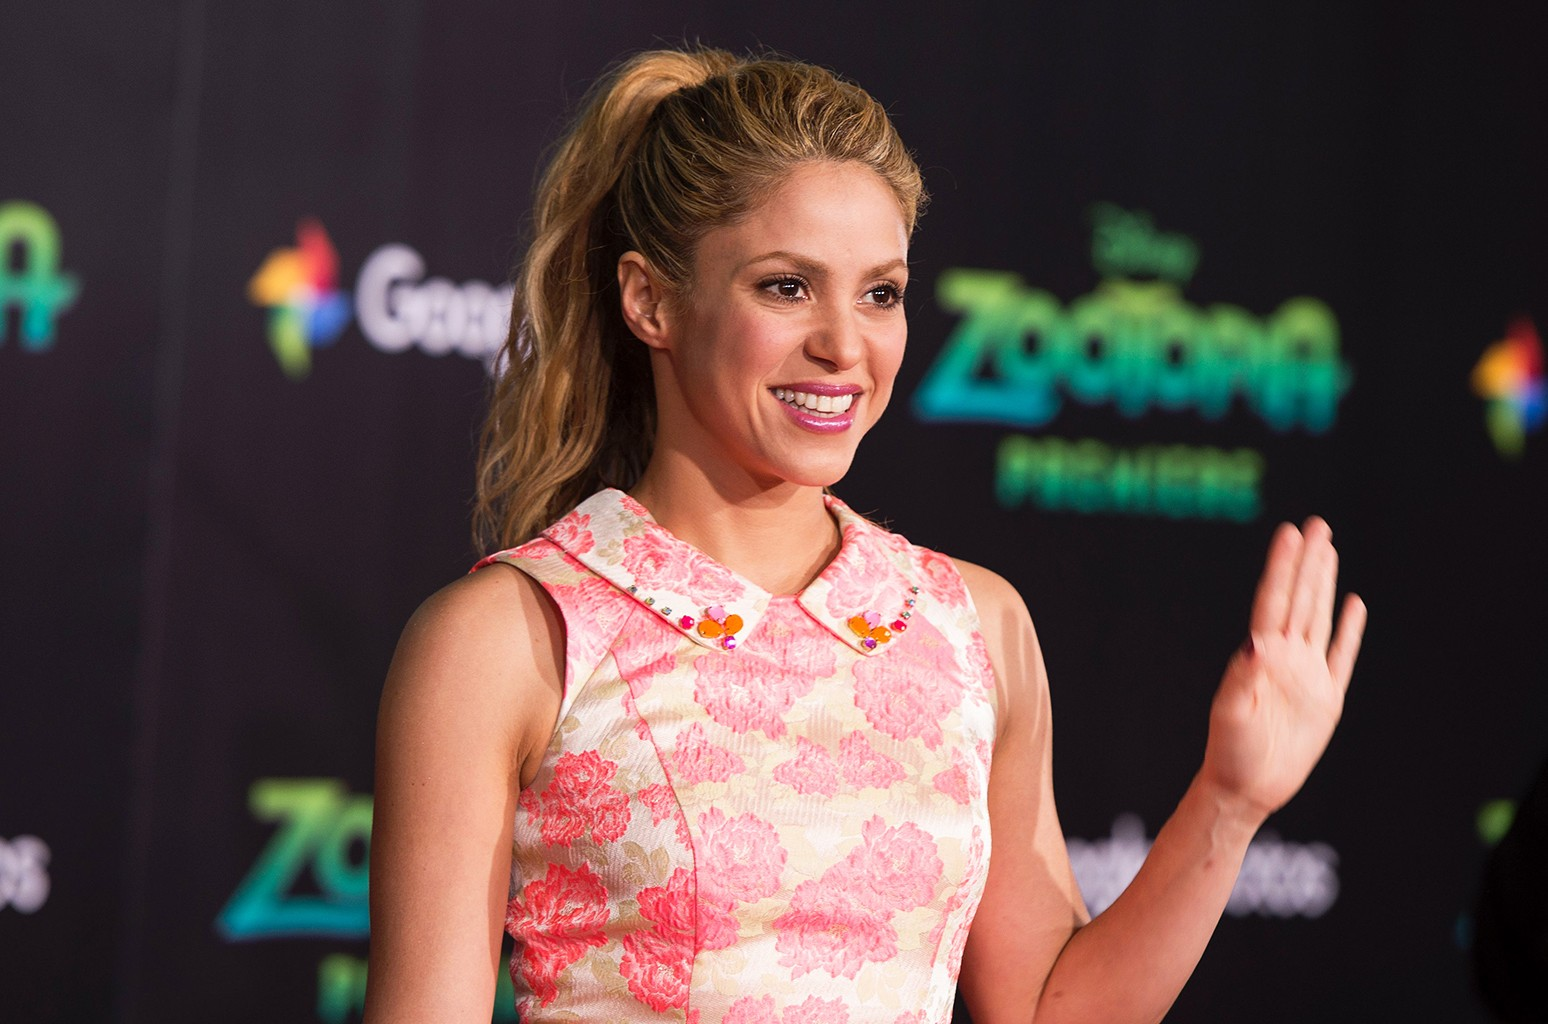 Shakira attends the Disney Premiere of Zootopia on Feb. 17, 2016 in Hollywood, Calif. VALERIE MACON/AFP/Getty Images